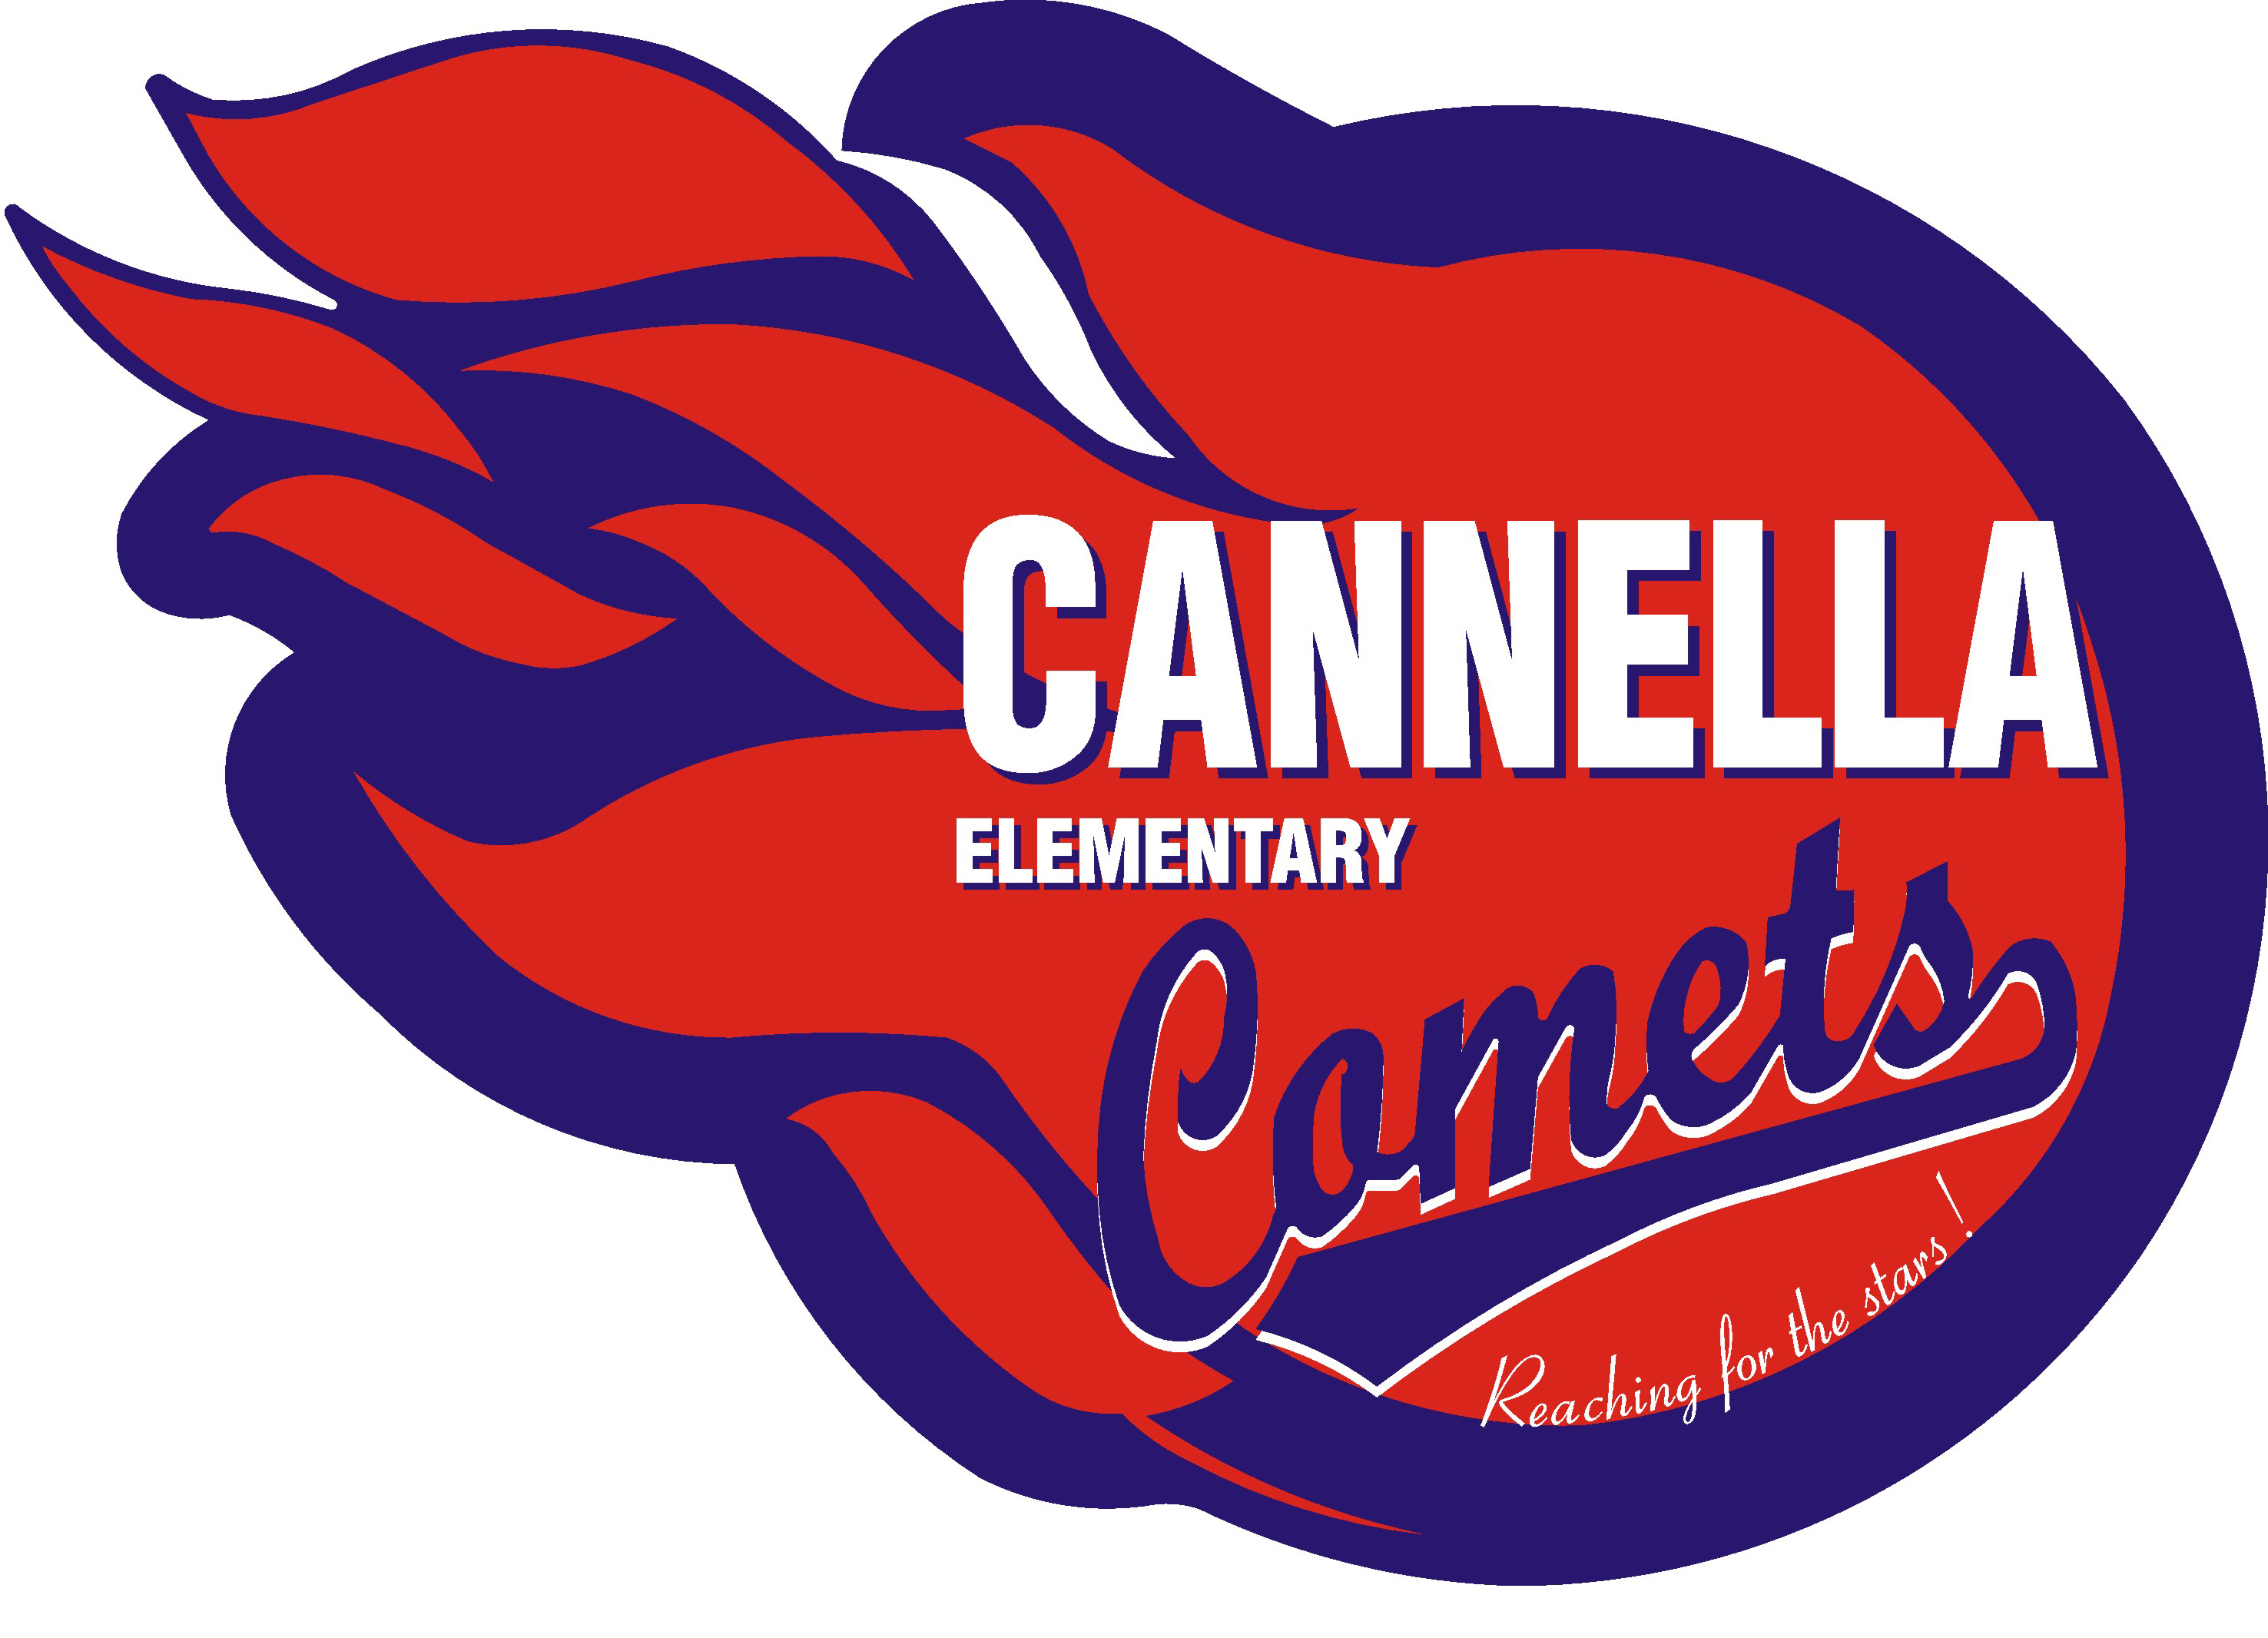 HCPS Cannella Elementary